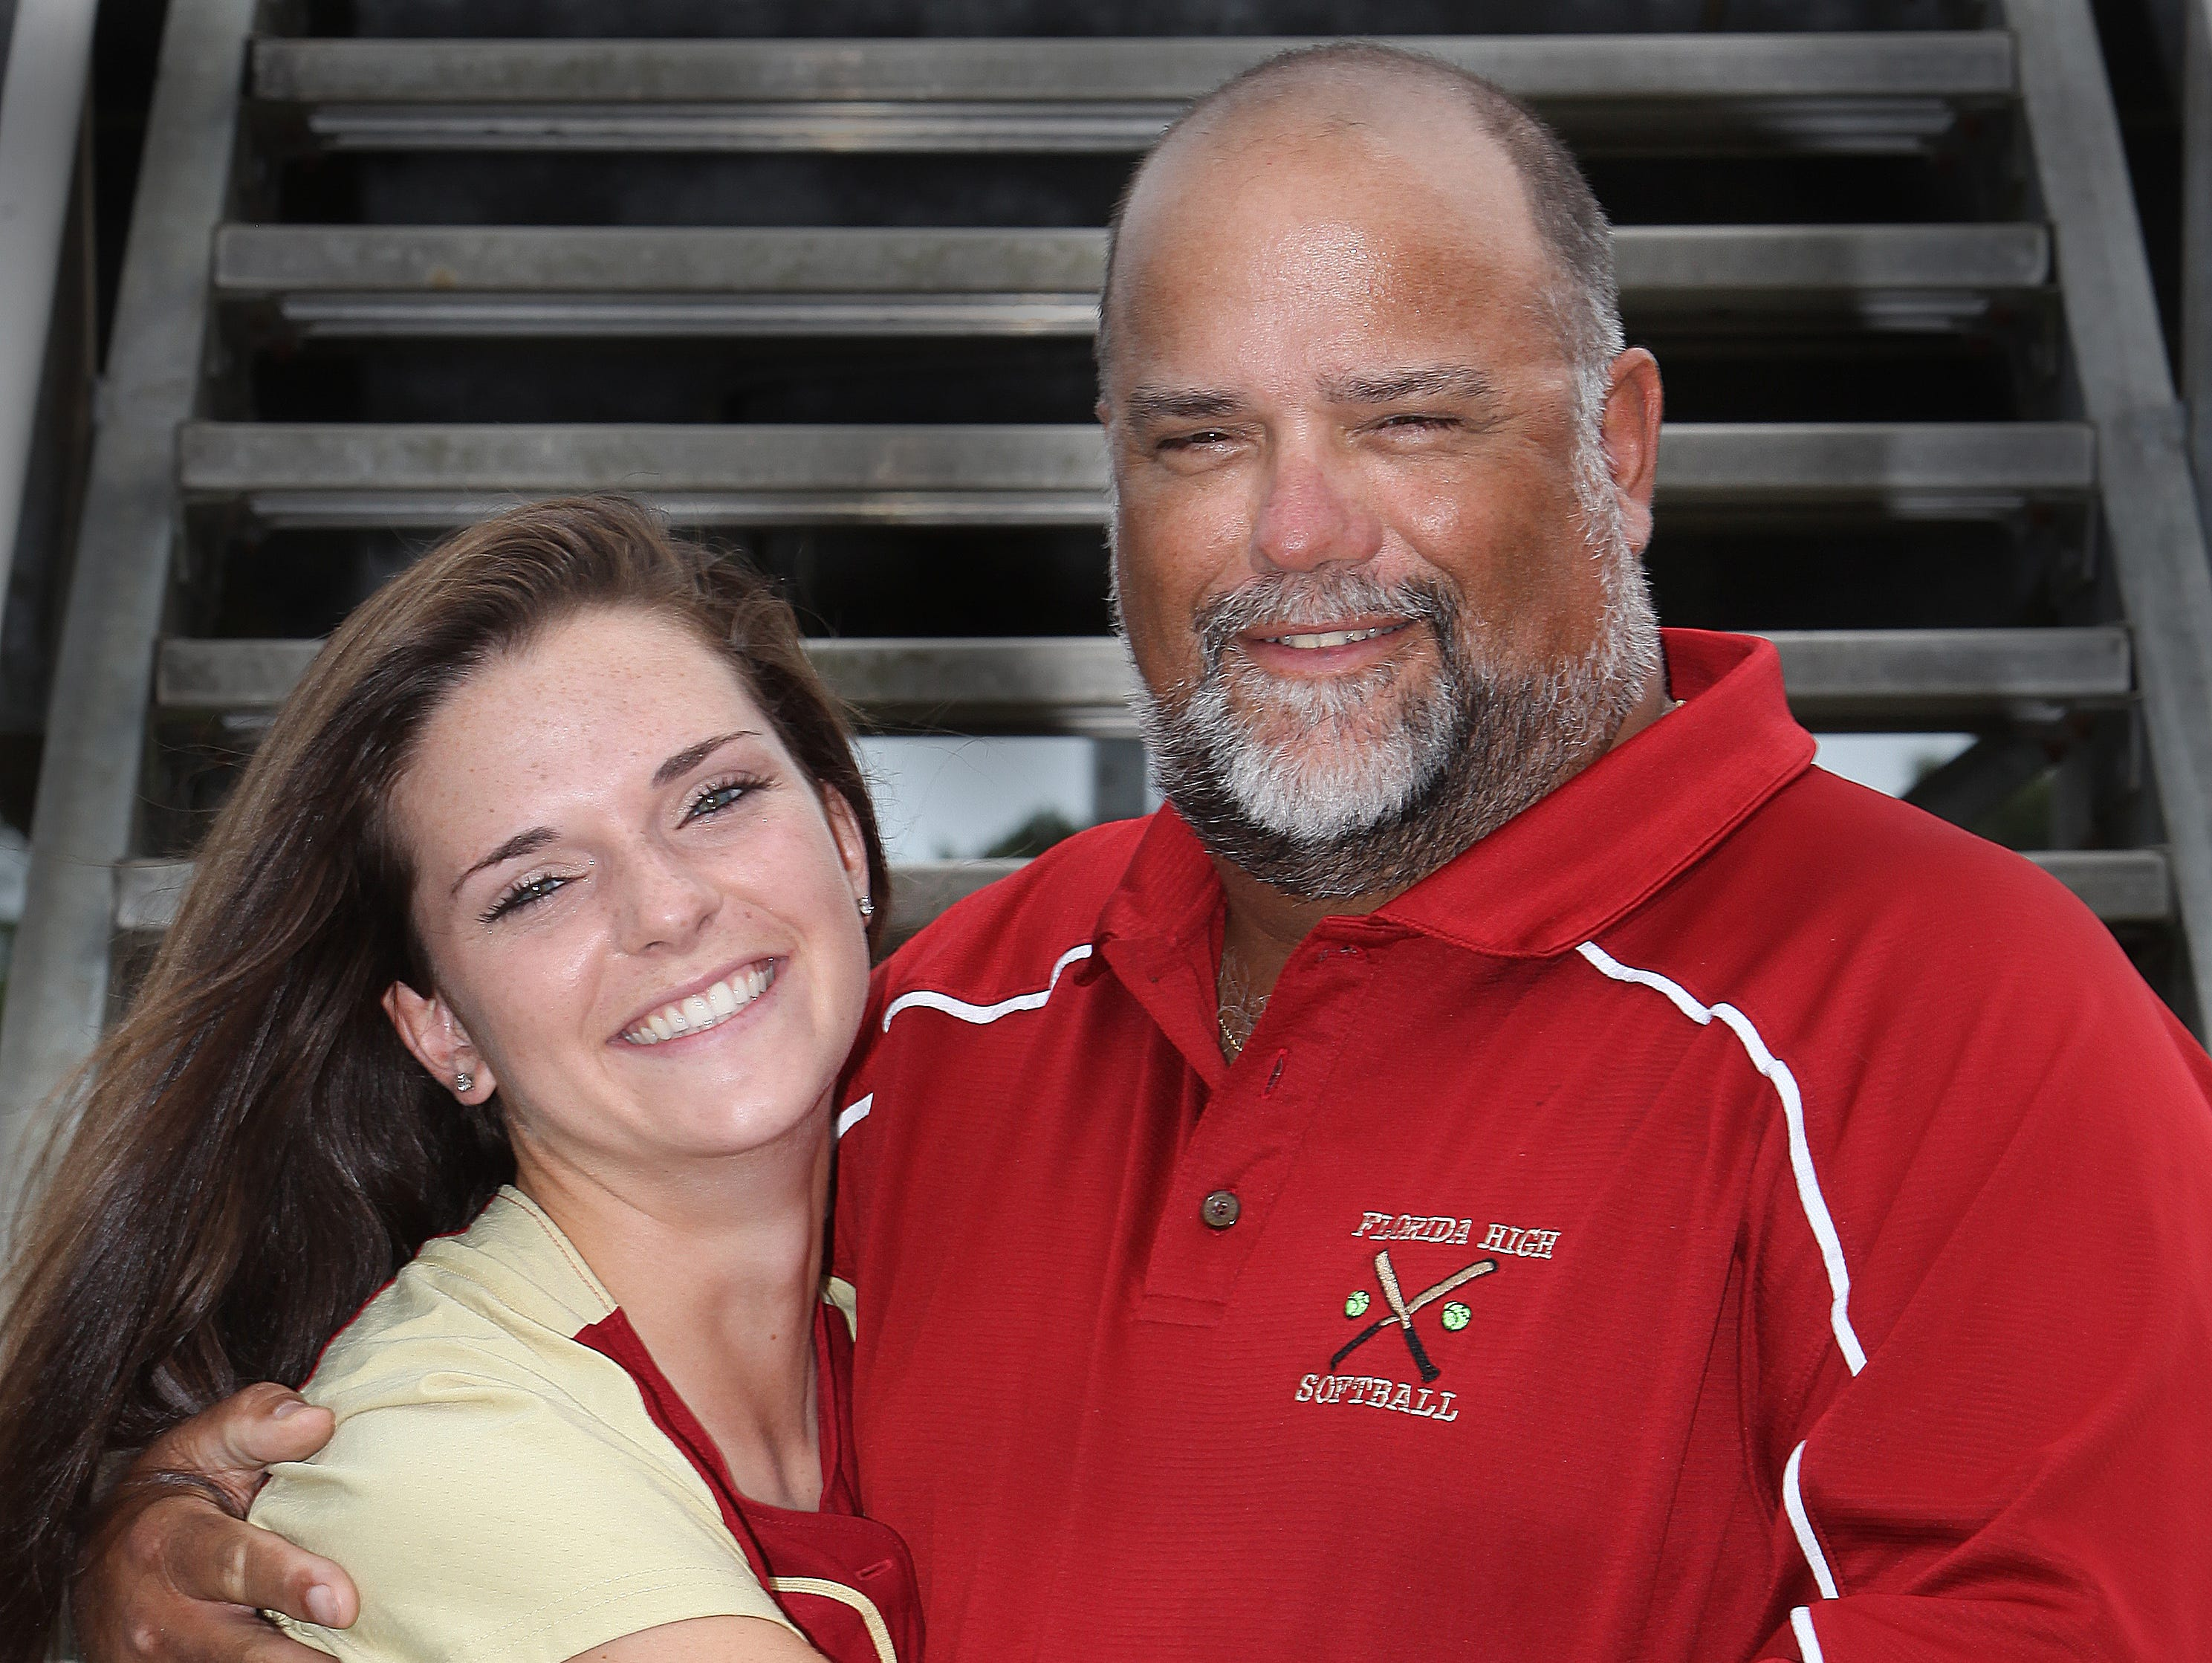 Florida High pitcher Taylor Rossman and father Rick Rosman were the All-Big Bend Player and Coach of the Year, respectively, in 2011.